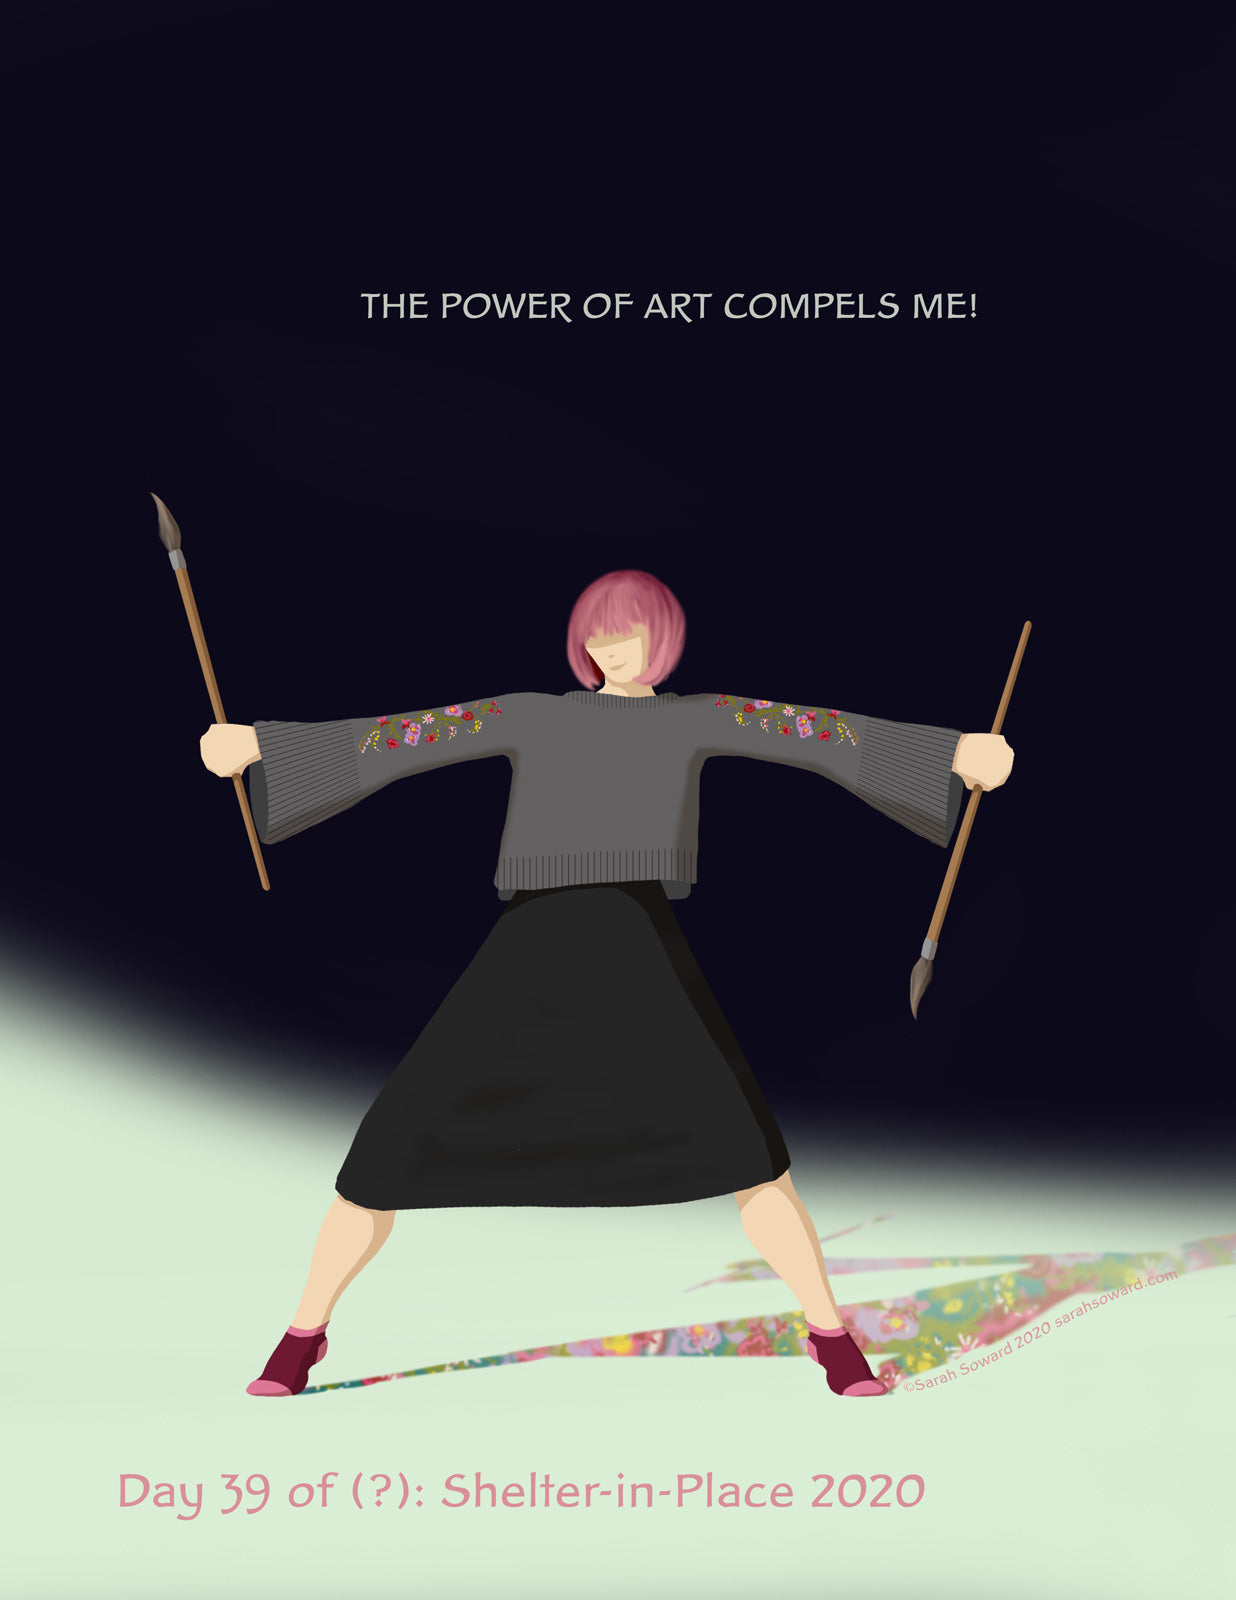 A woman is wearing a grey sweater with flowers on the sleeves. Her shadow has a mishmash of matching flowers in it. She stands wide, brandishing paintbrushes and smiling. The text on the image reads  THE POWER OF ART COMPELS ME!